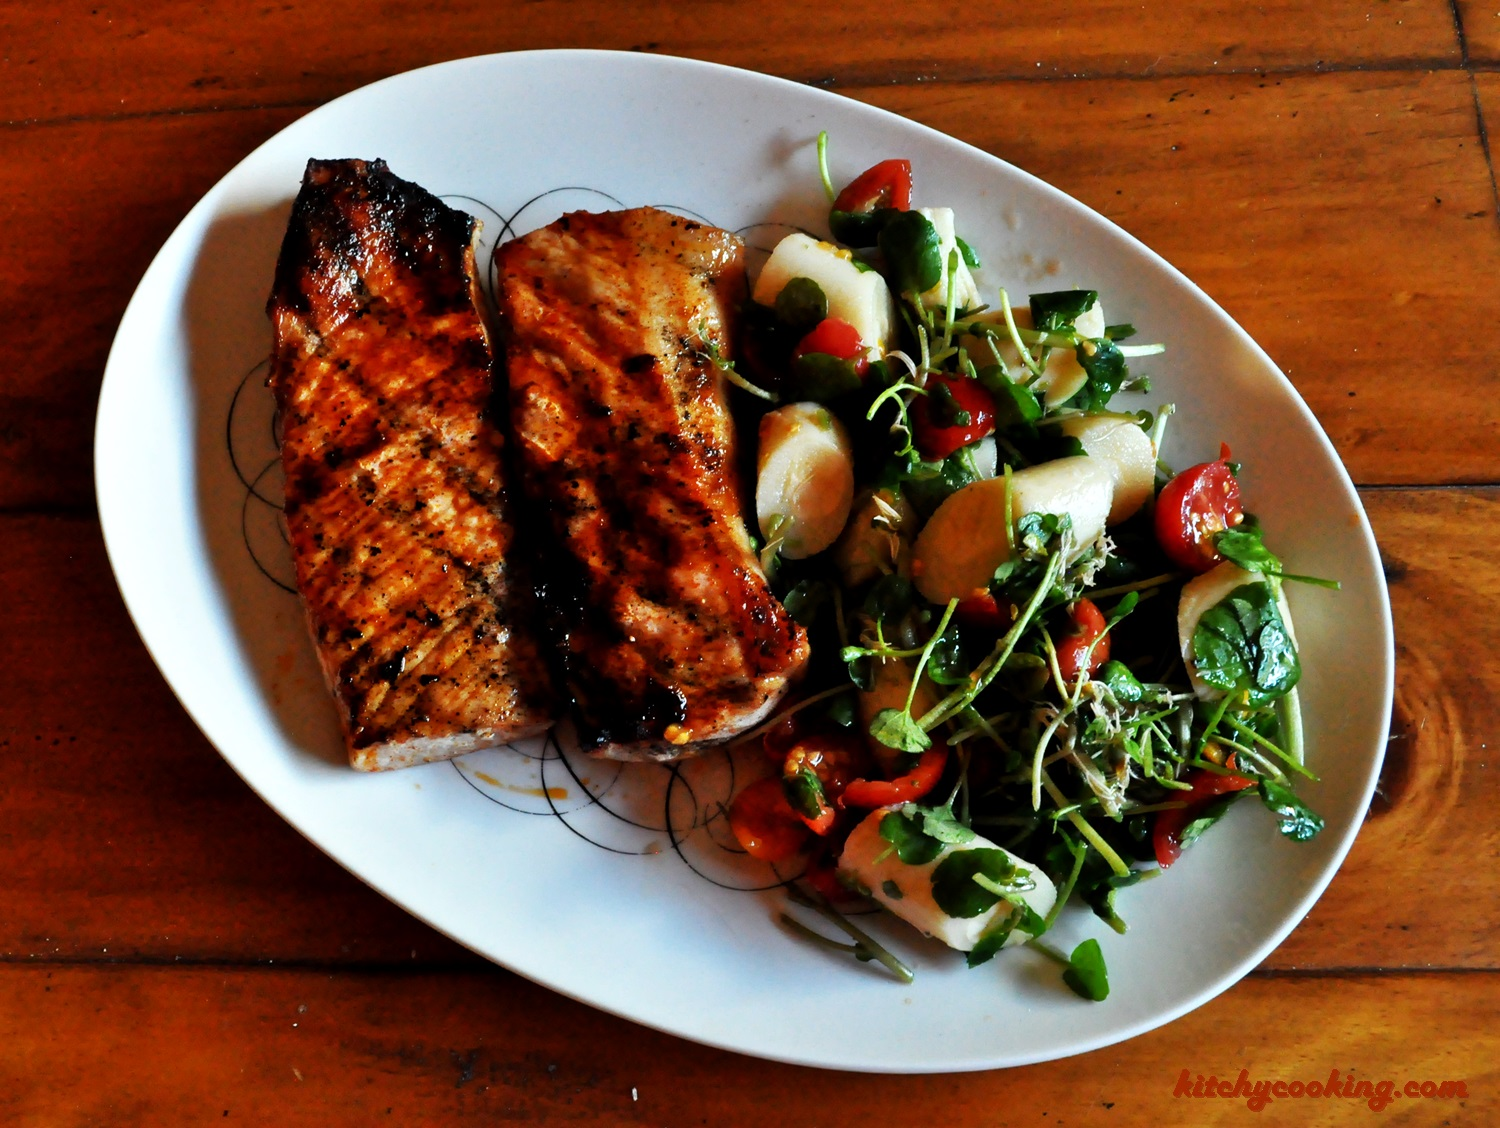 Paprika Pork Chops and Hearts of Palm Salad - Kitchy Cooking